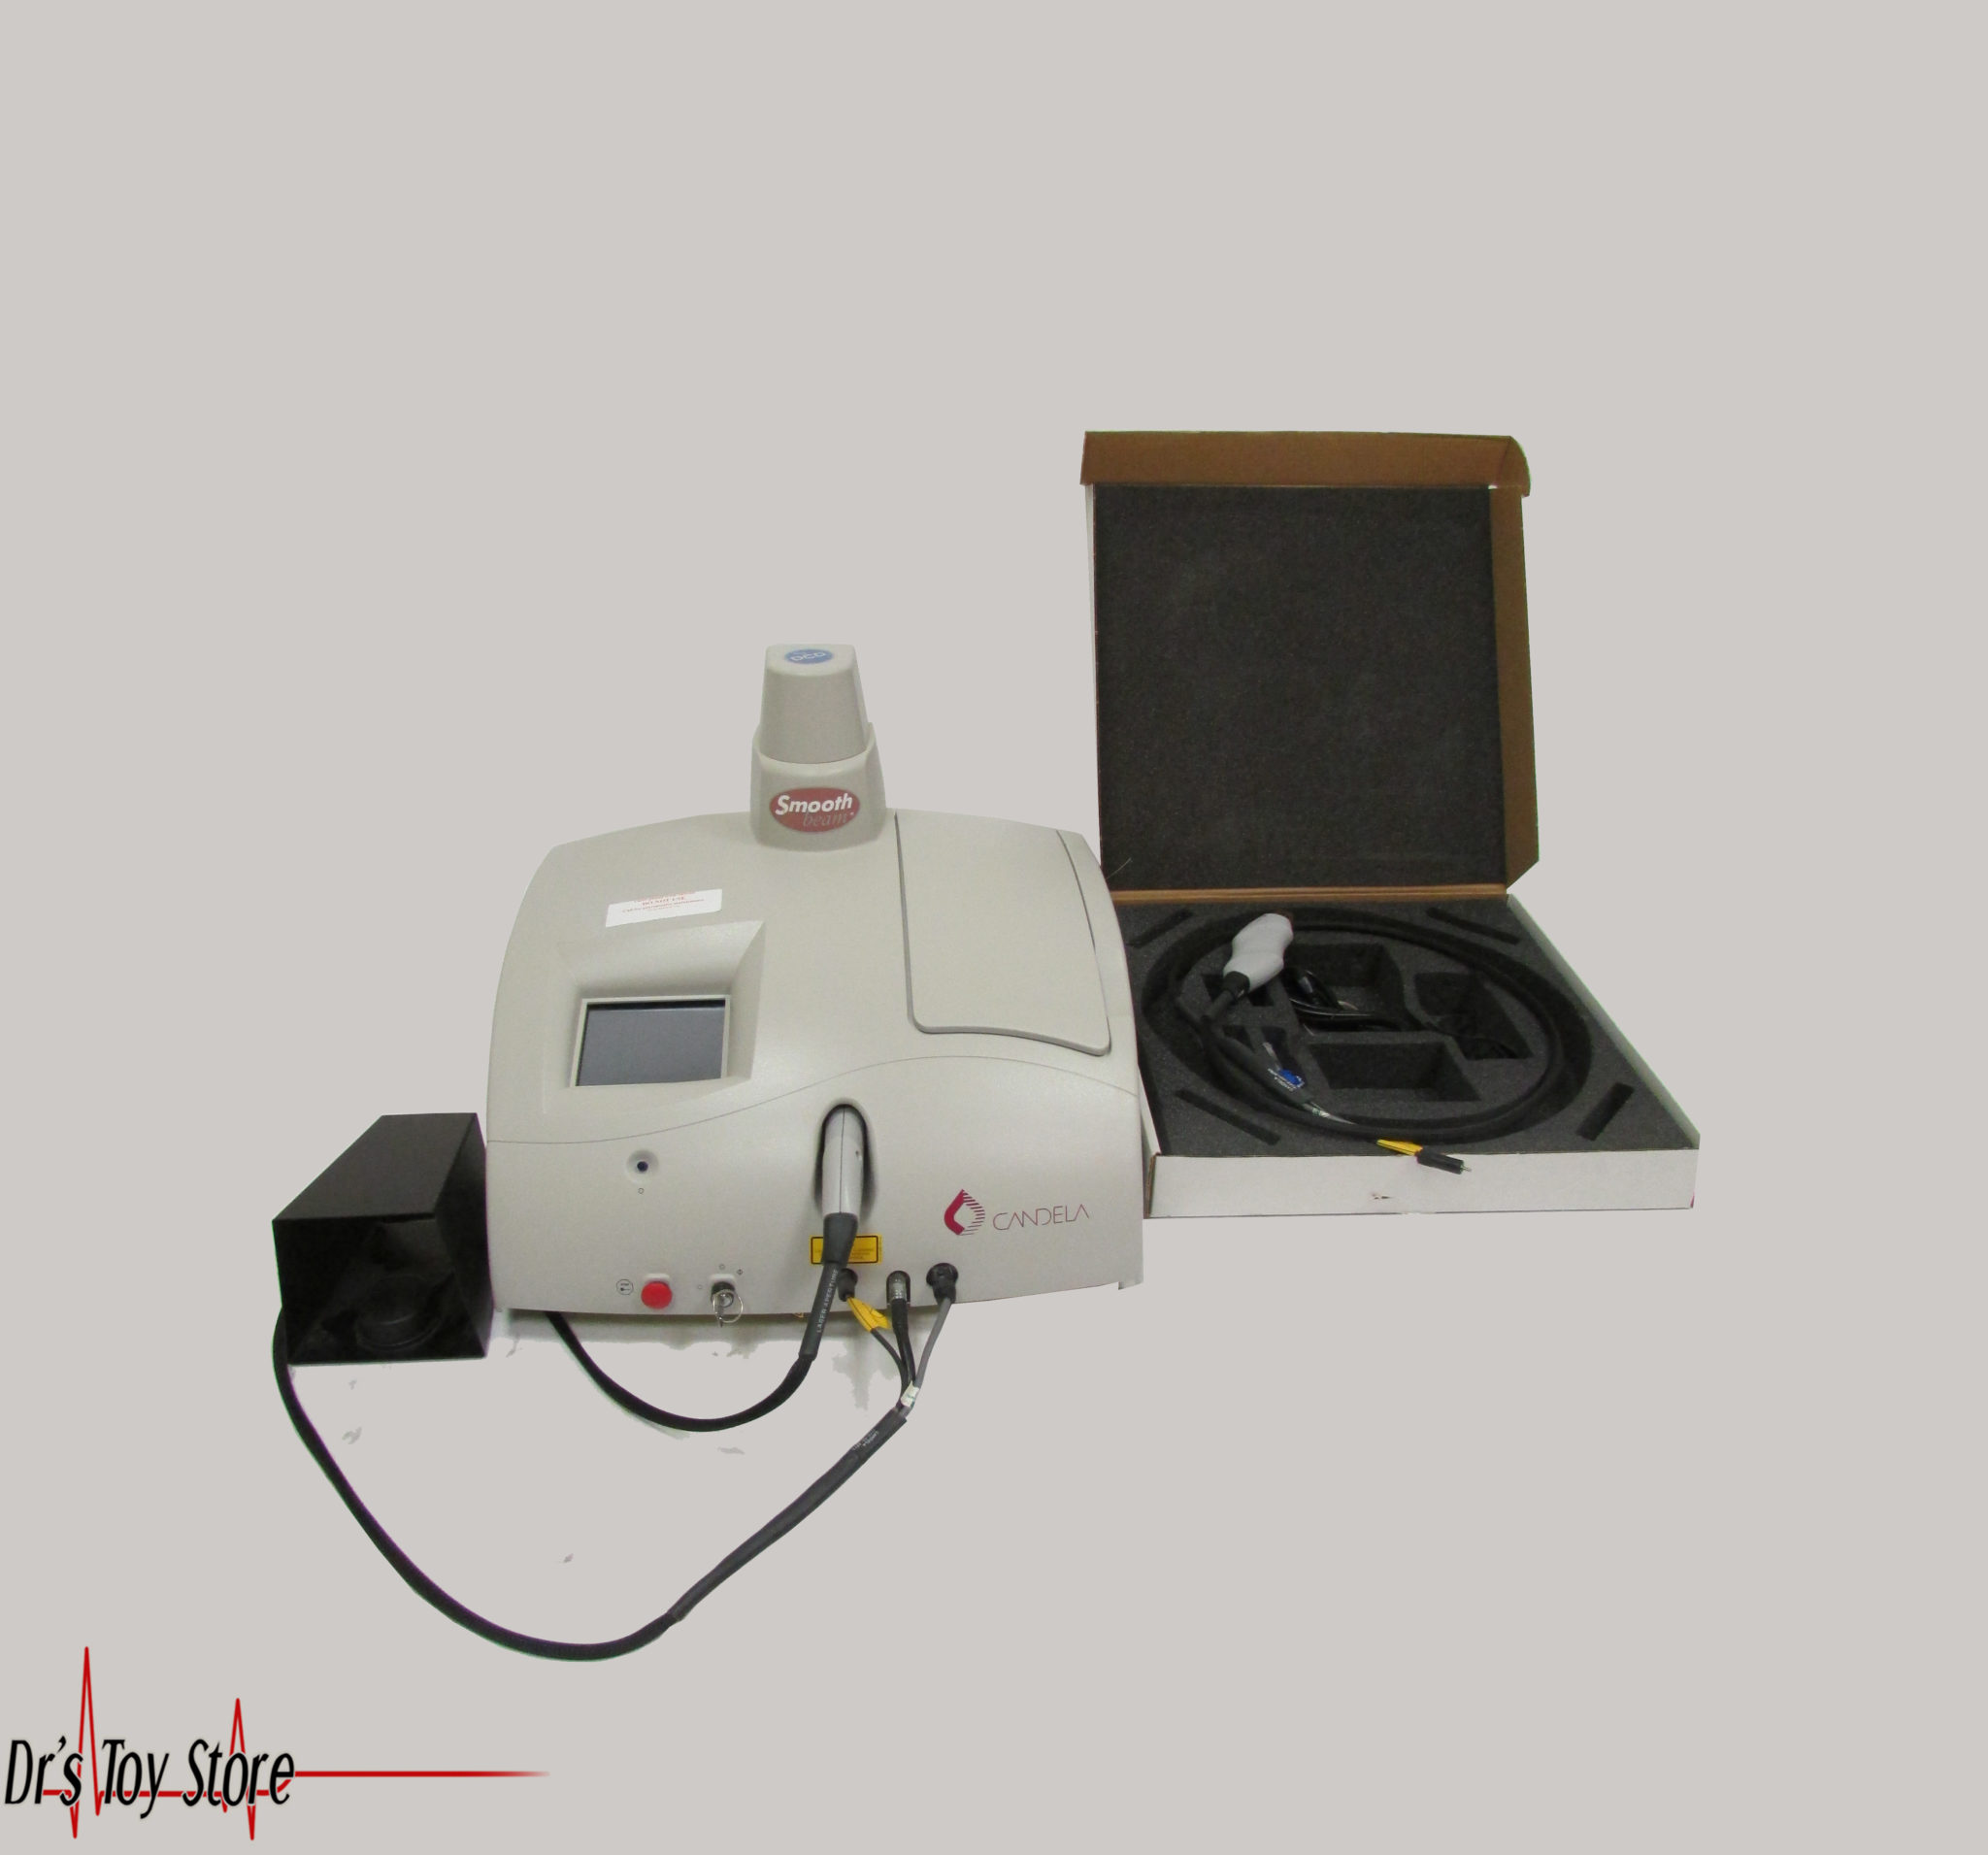 Candela Laser Smooth Beam W Two Handpieces For Sale At Dr